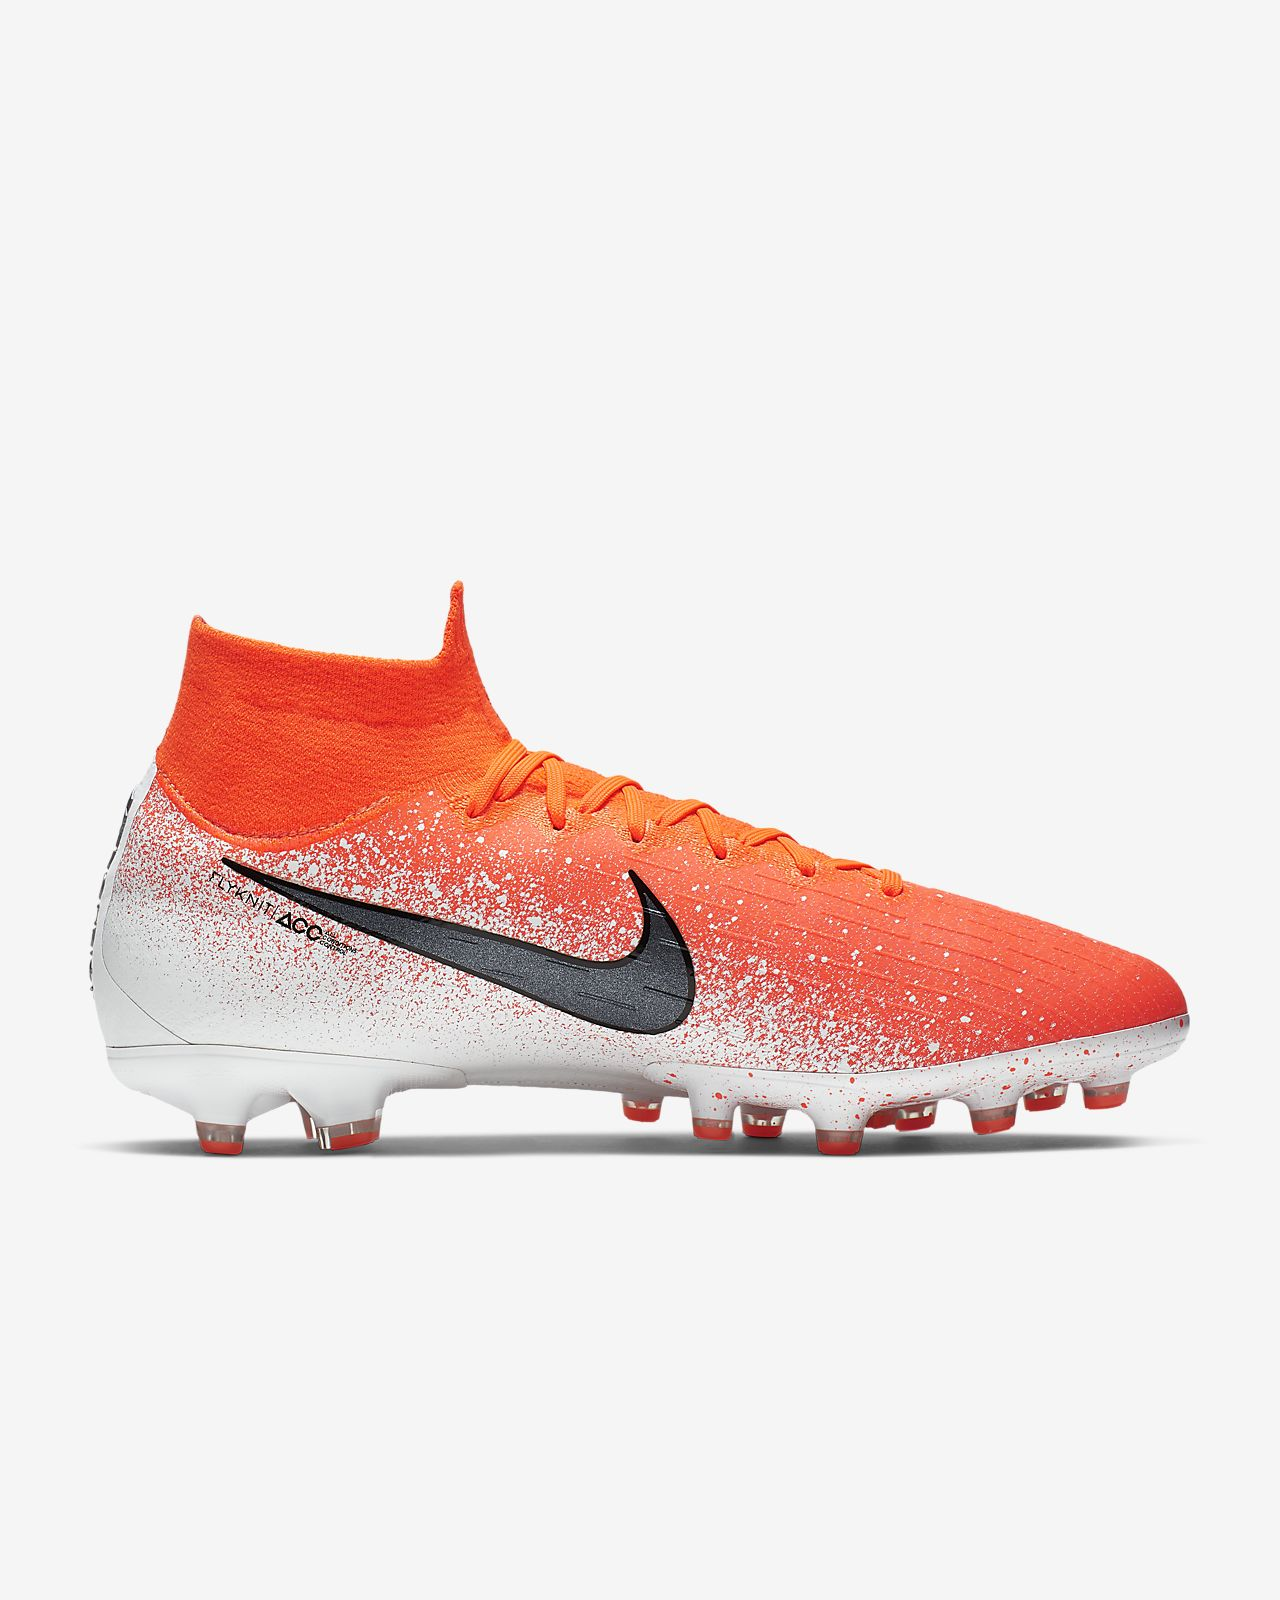 Grass Nike Football Superfly Boot Artificial Pro 360 Elite Mercurial Ag CWBrodxe